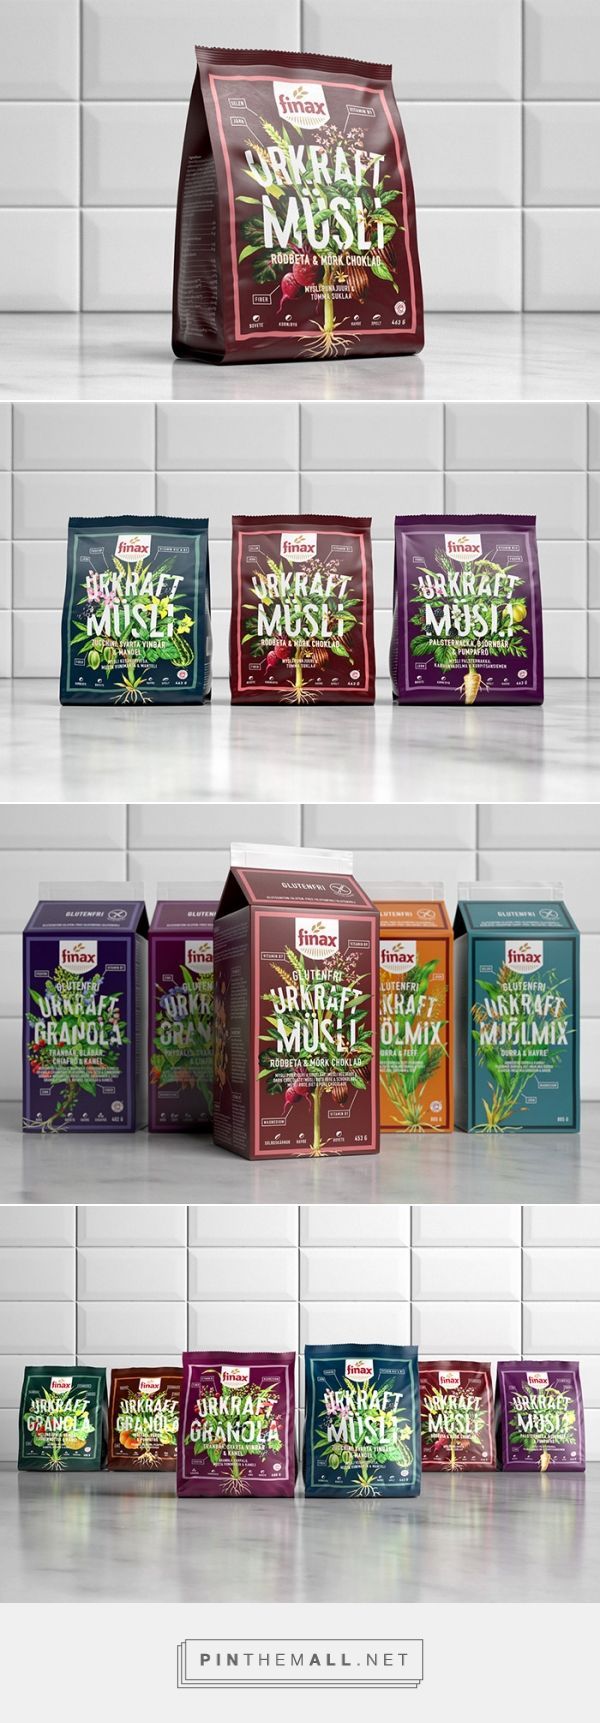 Finax Urkraft mueslies and granolas by Amore Brand Identity Studios. Source: Daily Package Design Inspiration. Pin curated by #SFields99 #packaging #design